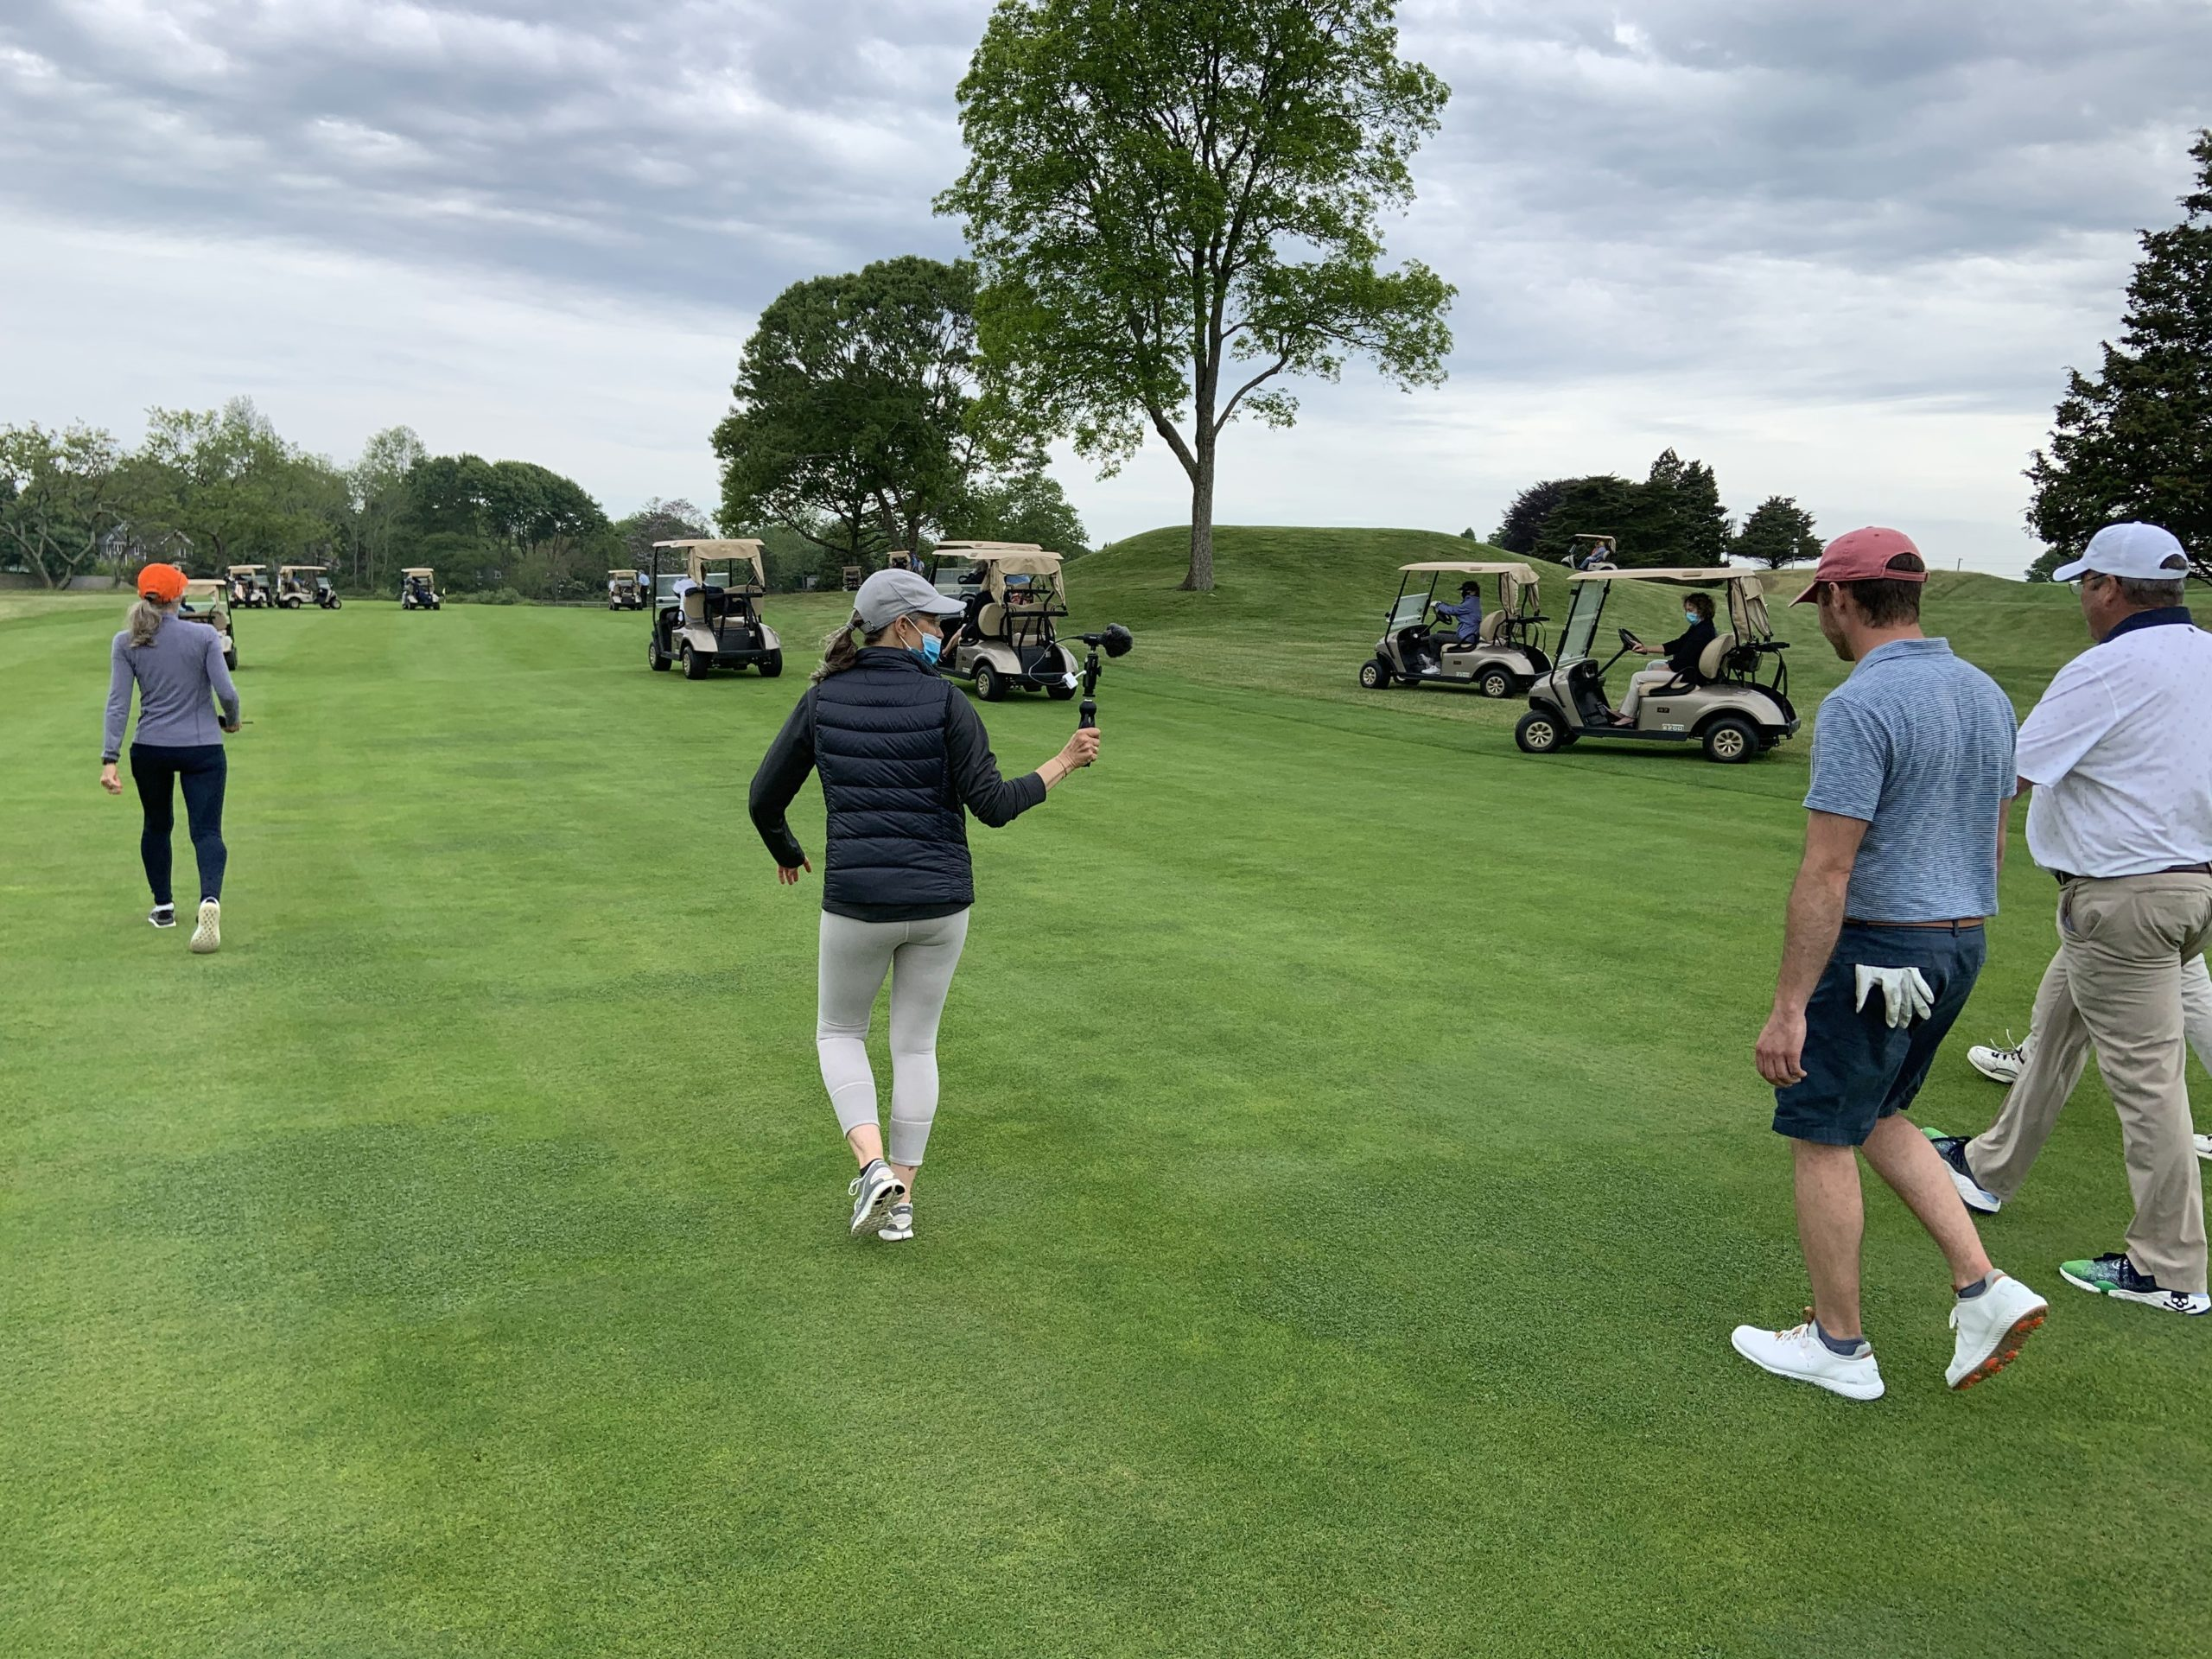 The South Fork Country Club in Amagansett raised over $115,000 for the East Hampton/Amagansett and Springs food pantries in a charity golf match on Friday.  GABRIELA CARROLL